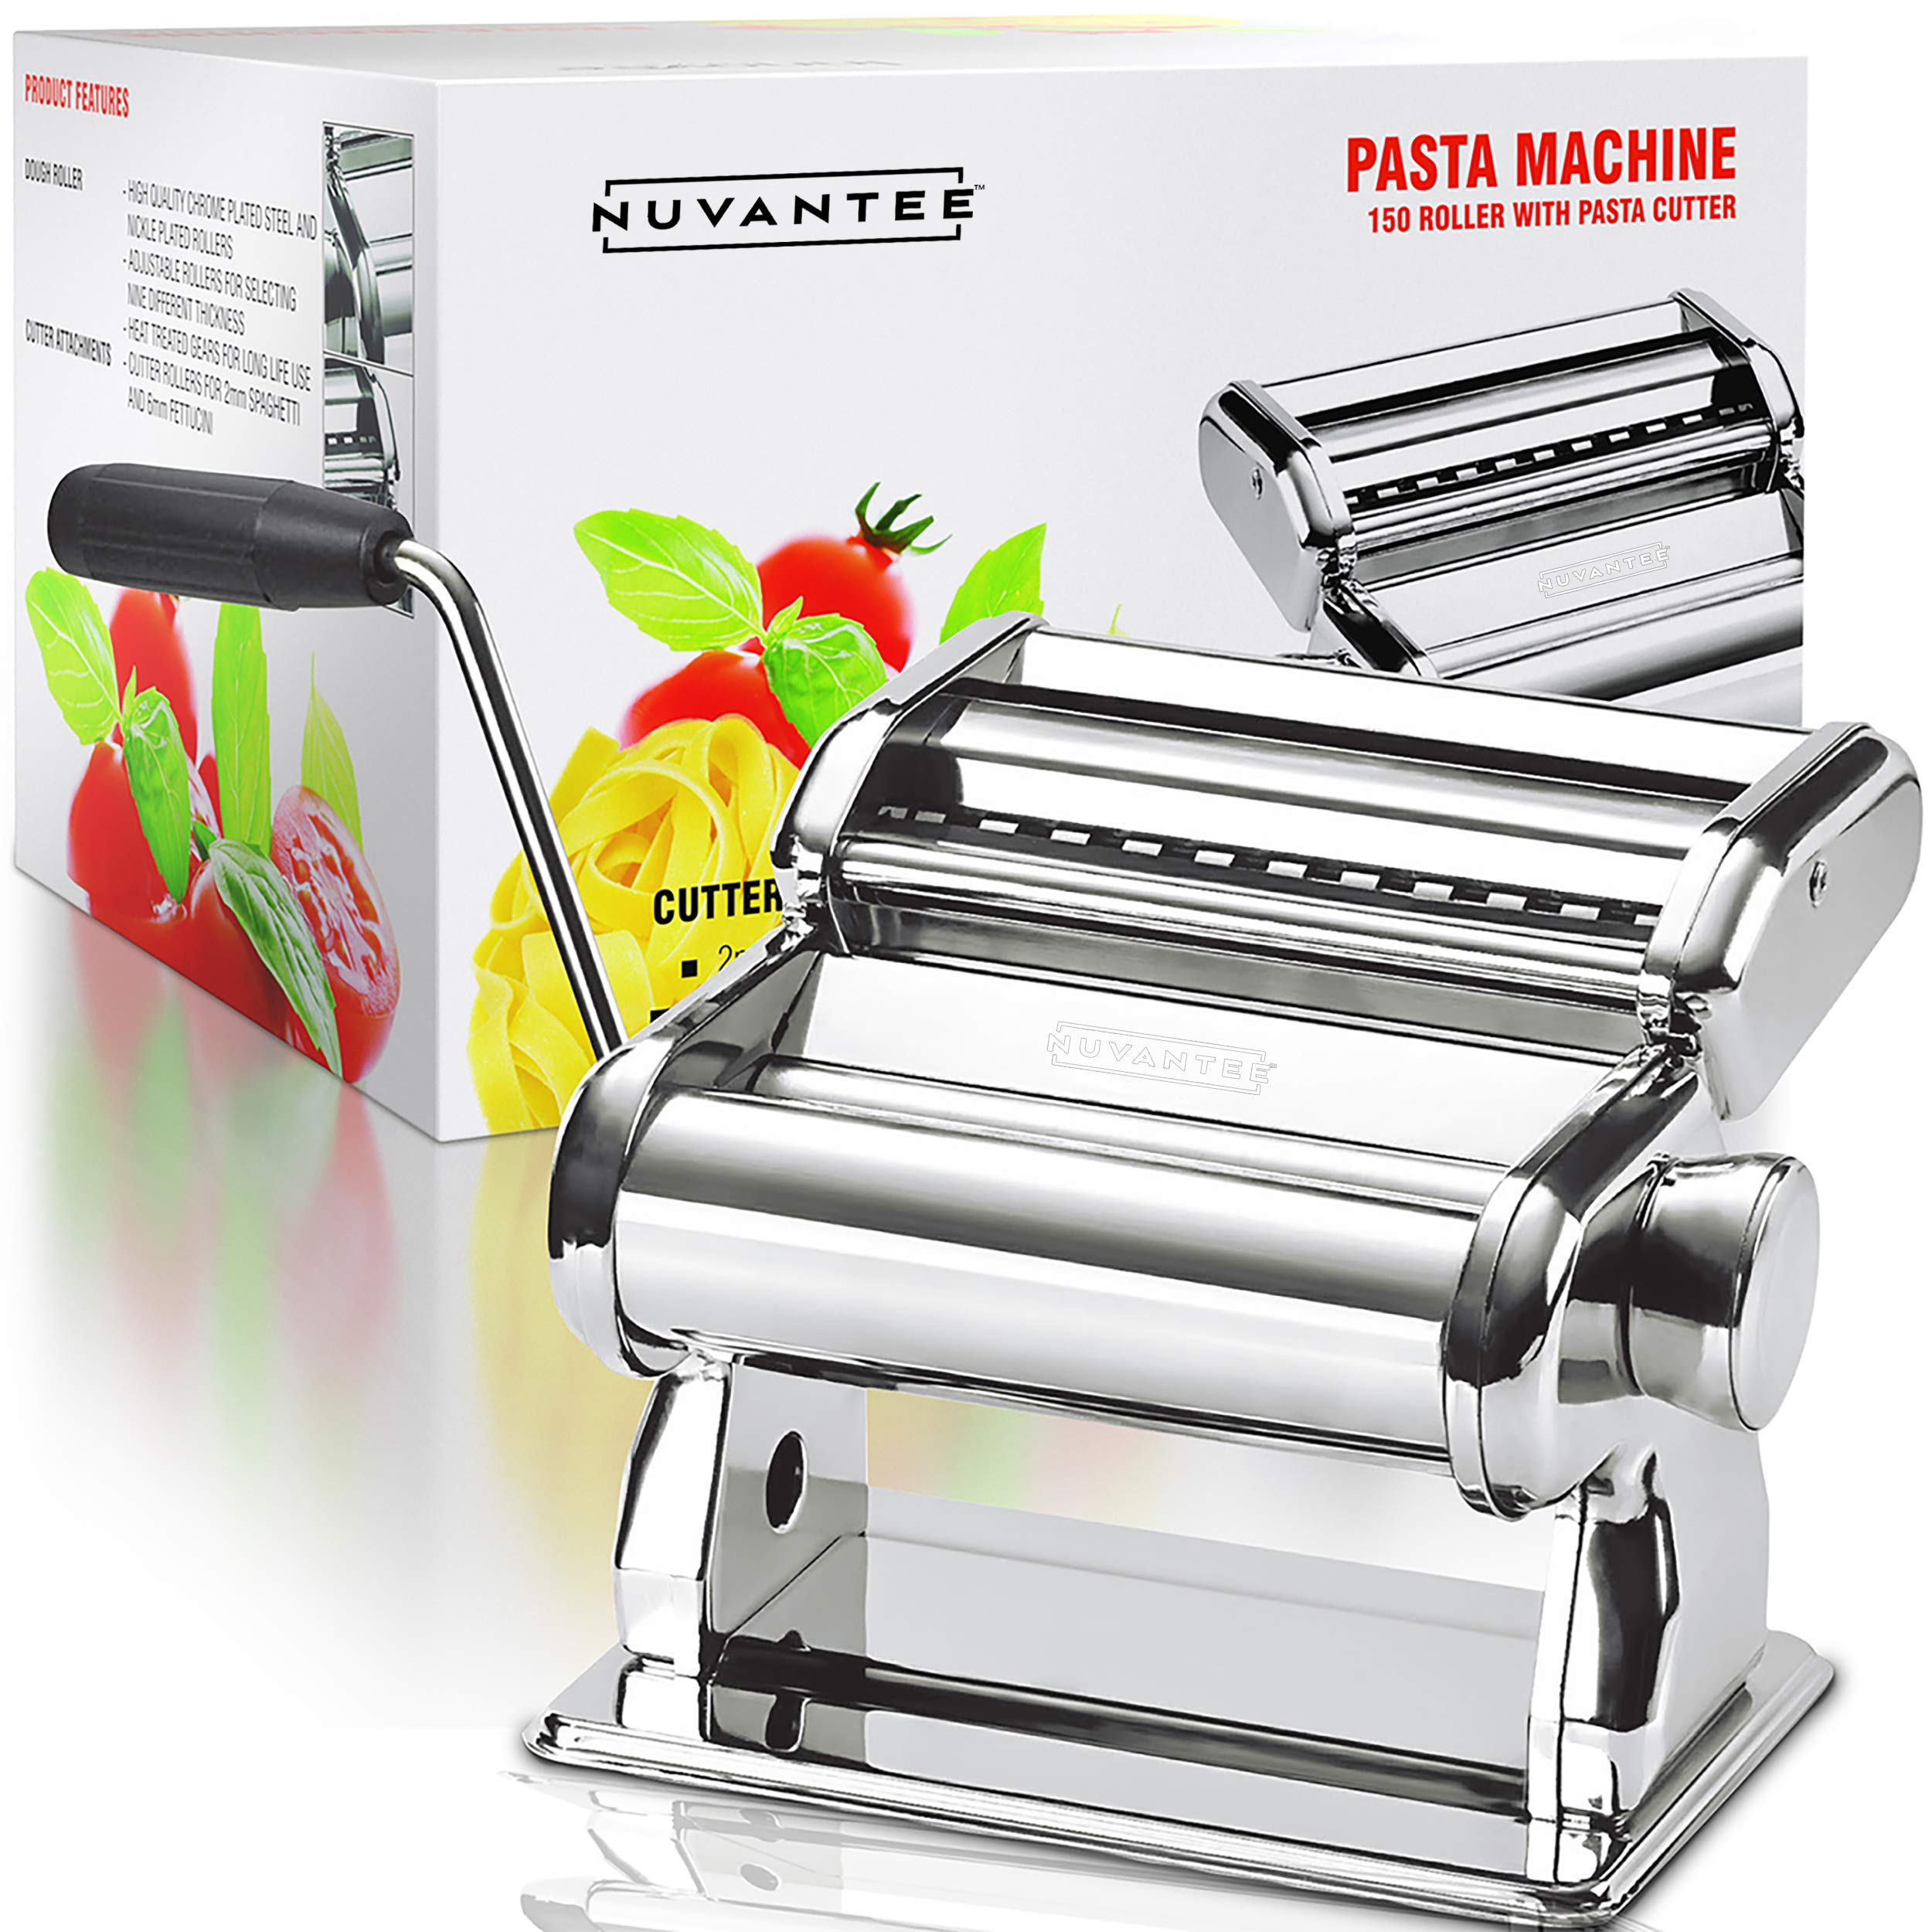 Nuvantee Pasta Maker - Highest Quality Pasta Machine - 150 Roller with Pasta Cutter - 7 Adjustable Thickness Settings by Nuvantee